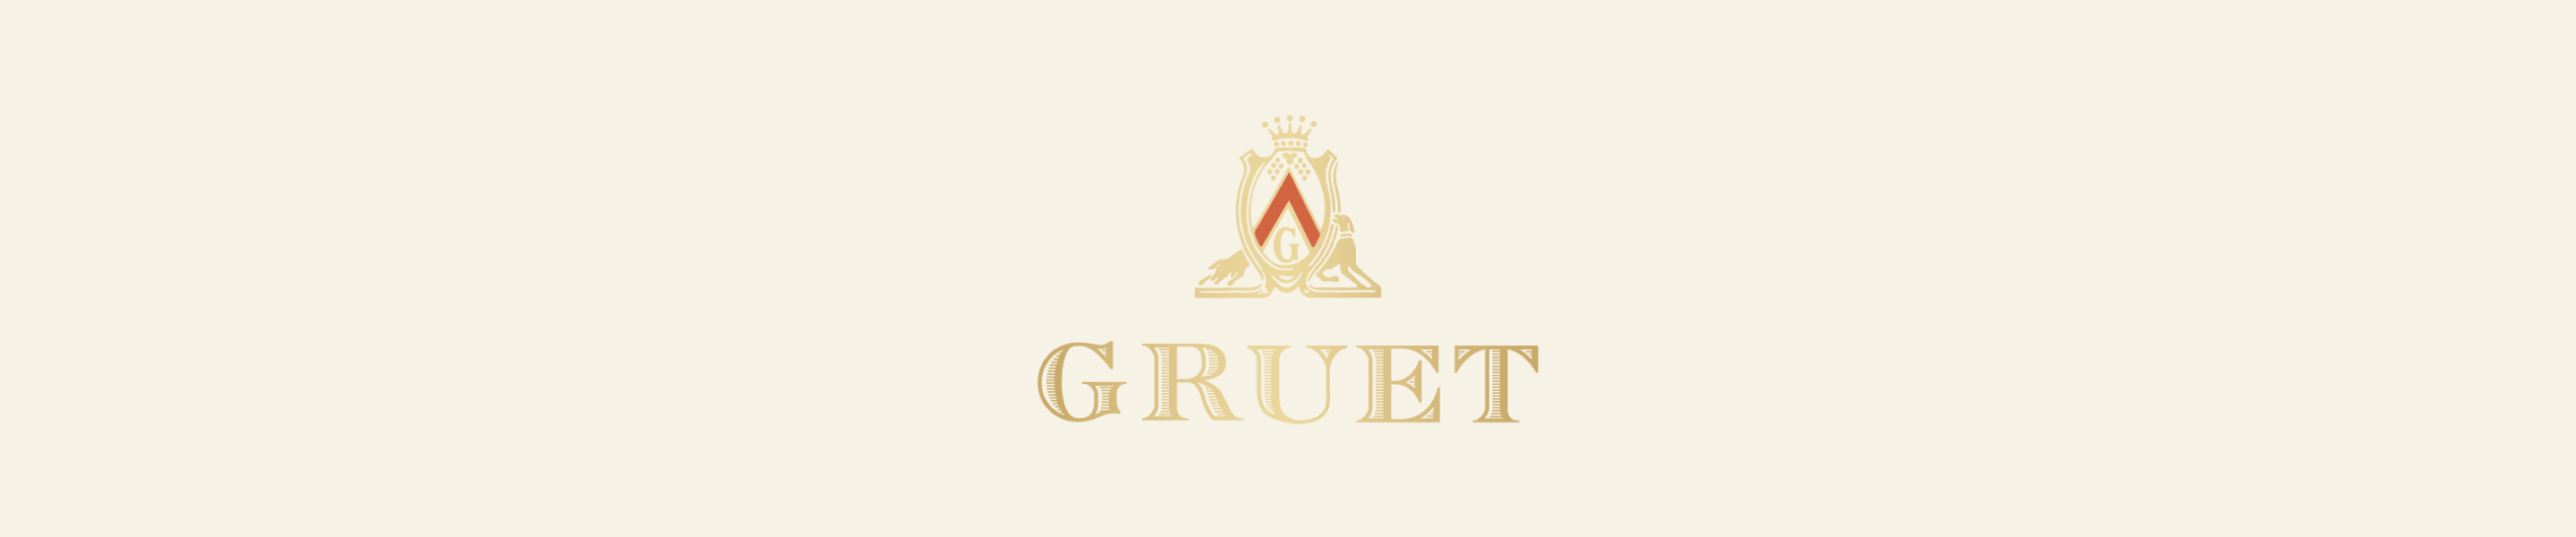 Founded in 1984, Gruet Winery specializes in Méthode Champenoise sparkling wines. Family owned and run, the New Mexico-based winery produces Pinot Noir and Chardonnay-based sparkling wines and a small collection of still wines. Gruet's roots originated from Gilbert Gruet's Champagne house in Bethon, France!